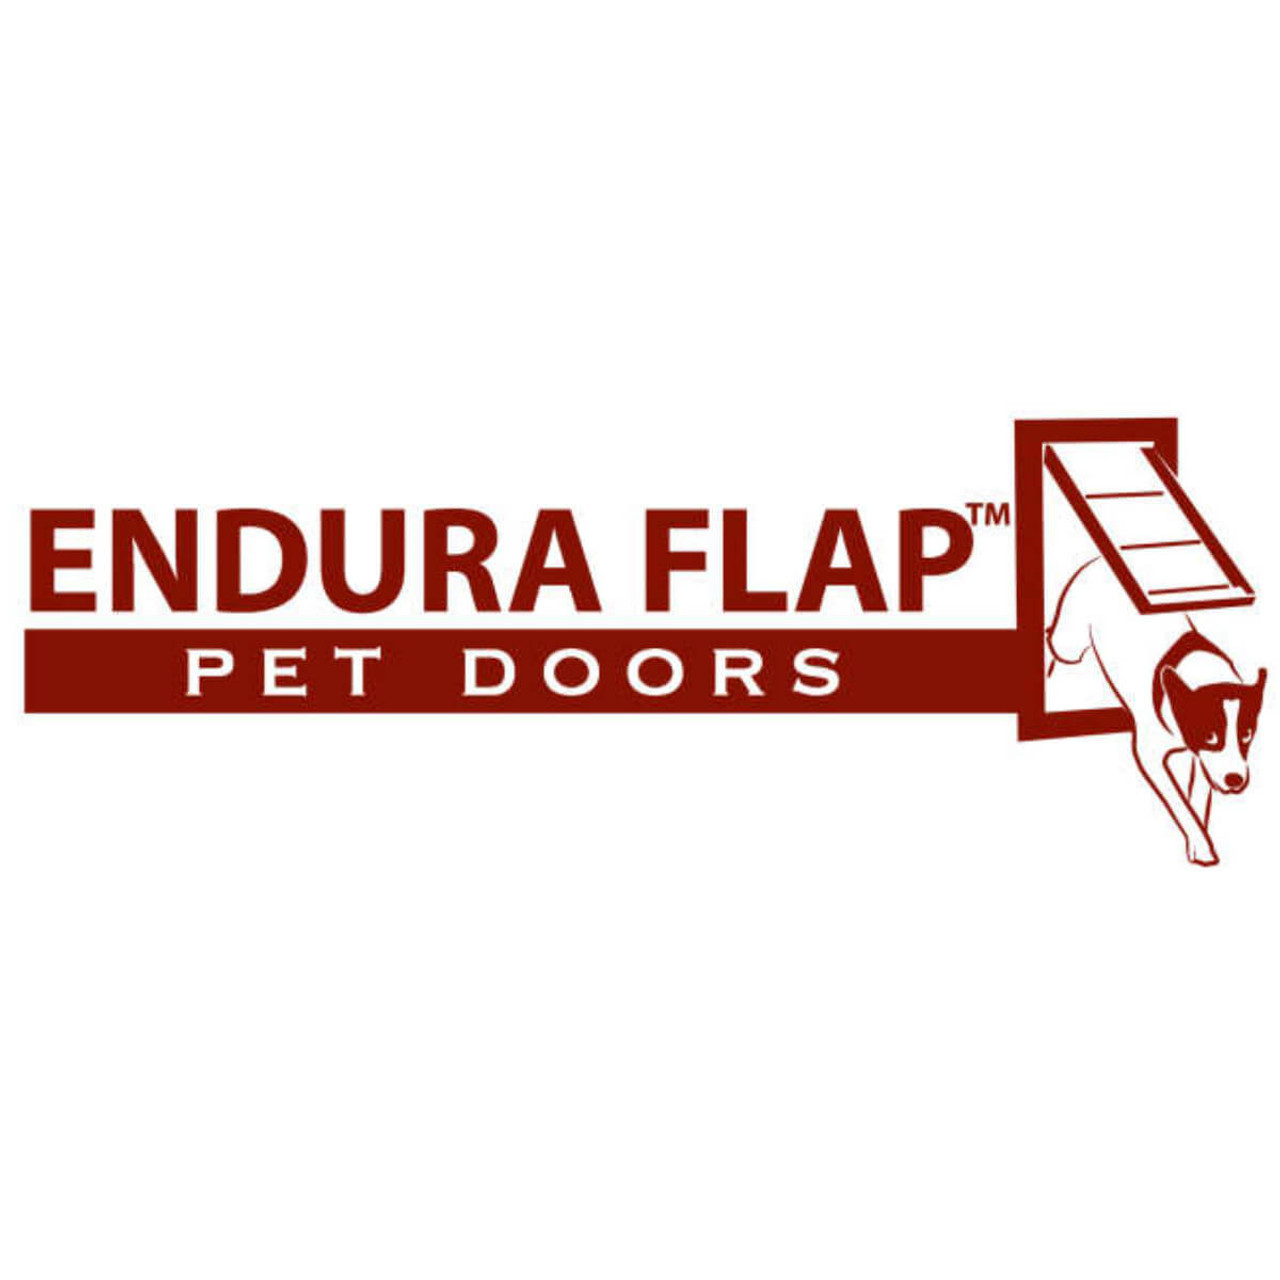 Endura Flap makes some of the most weather tight pet doors available